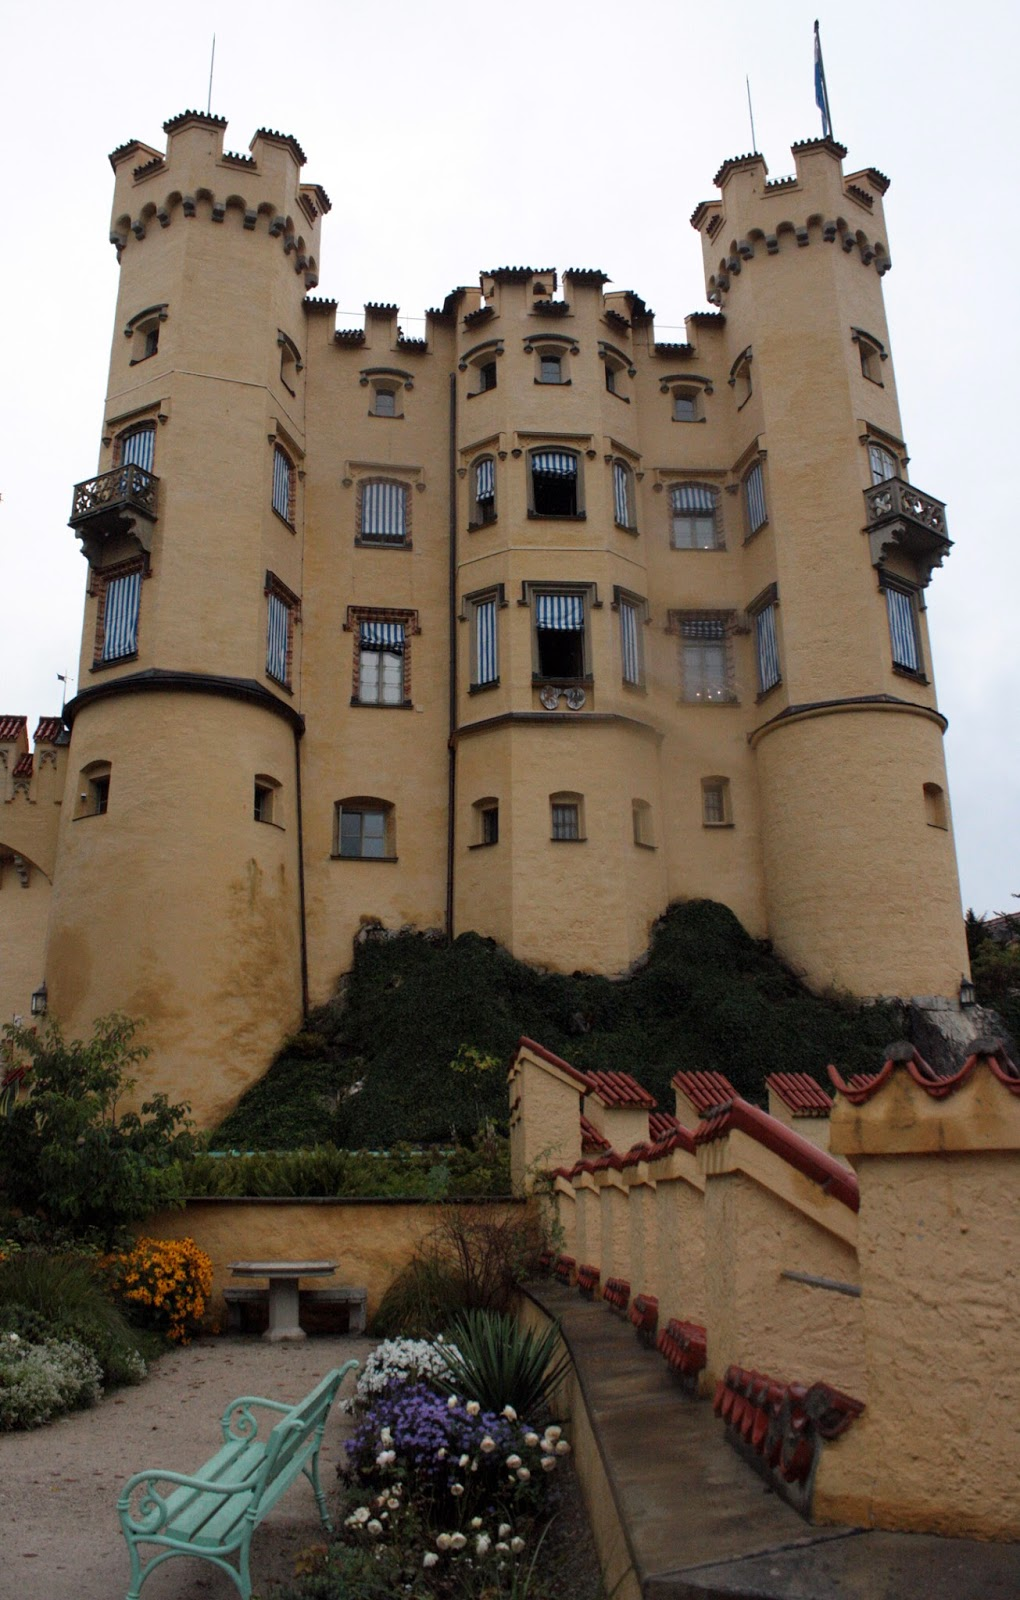 Visiting Hohenschwangau Castle - The Tipsy Terrier blog